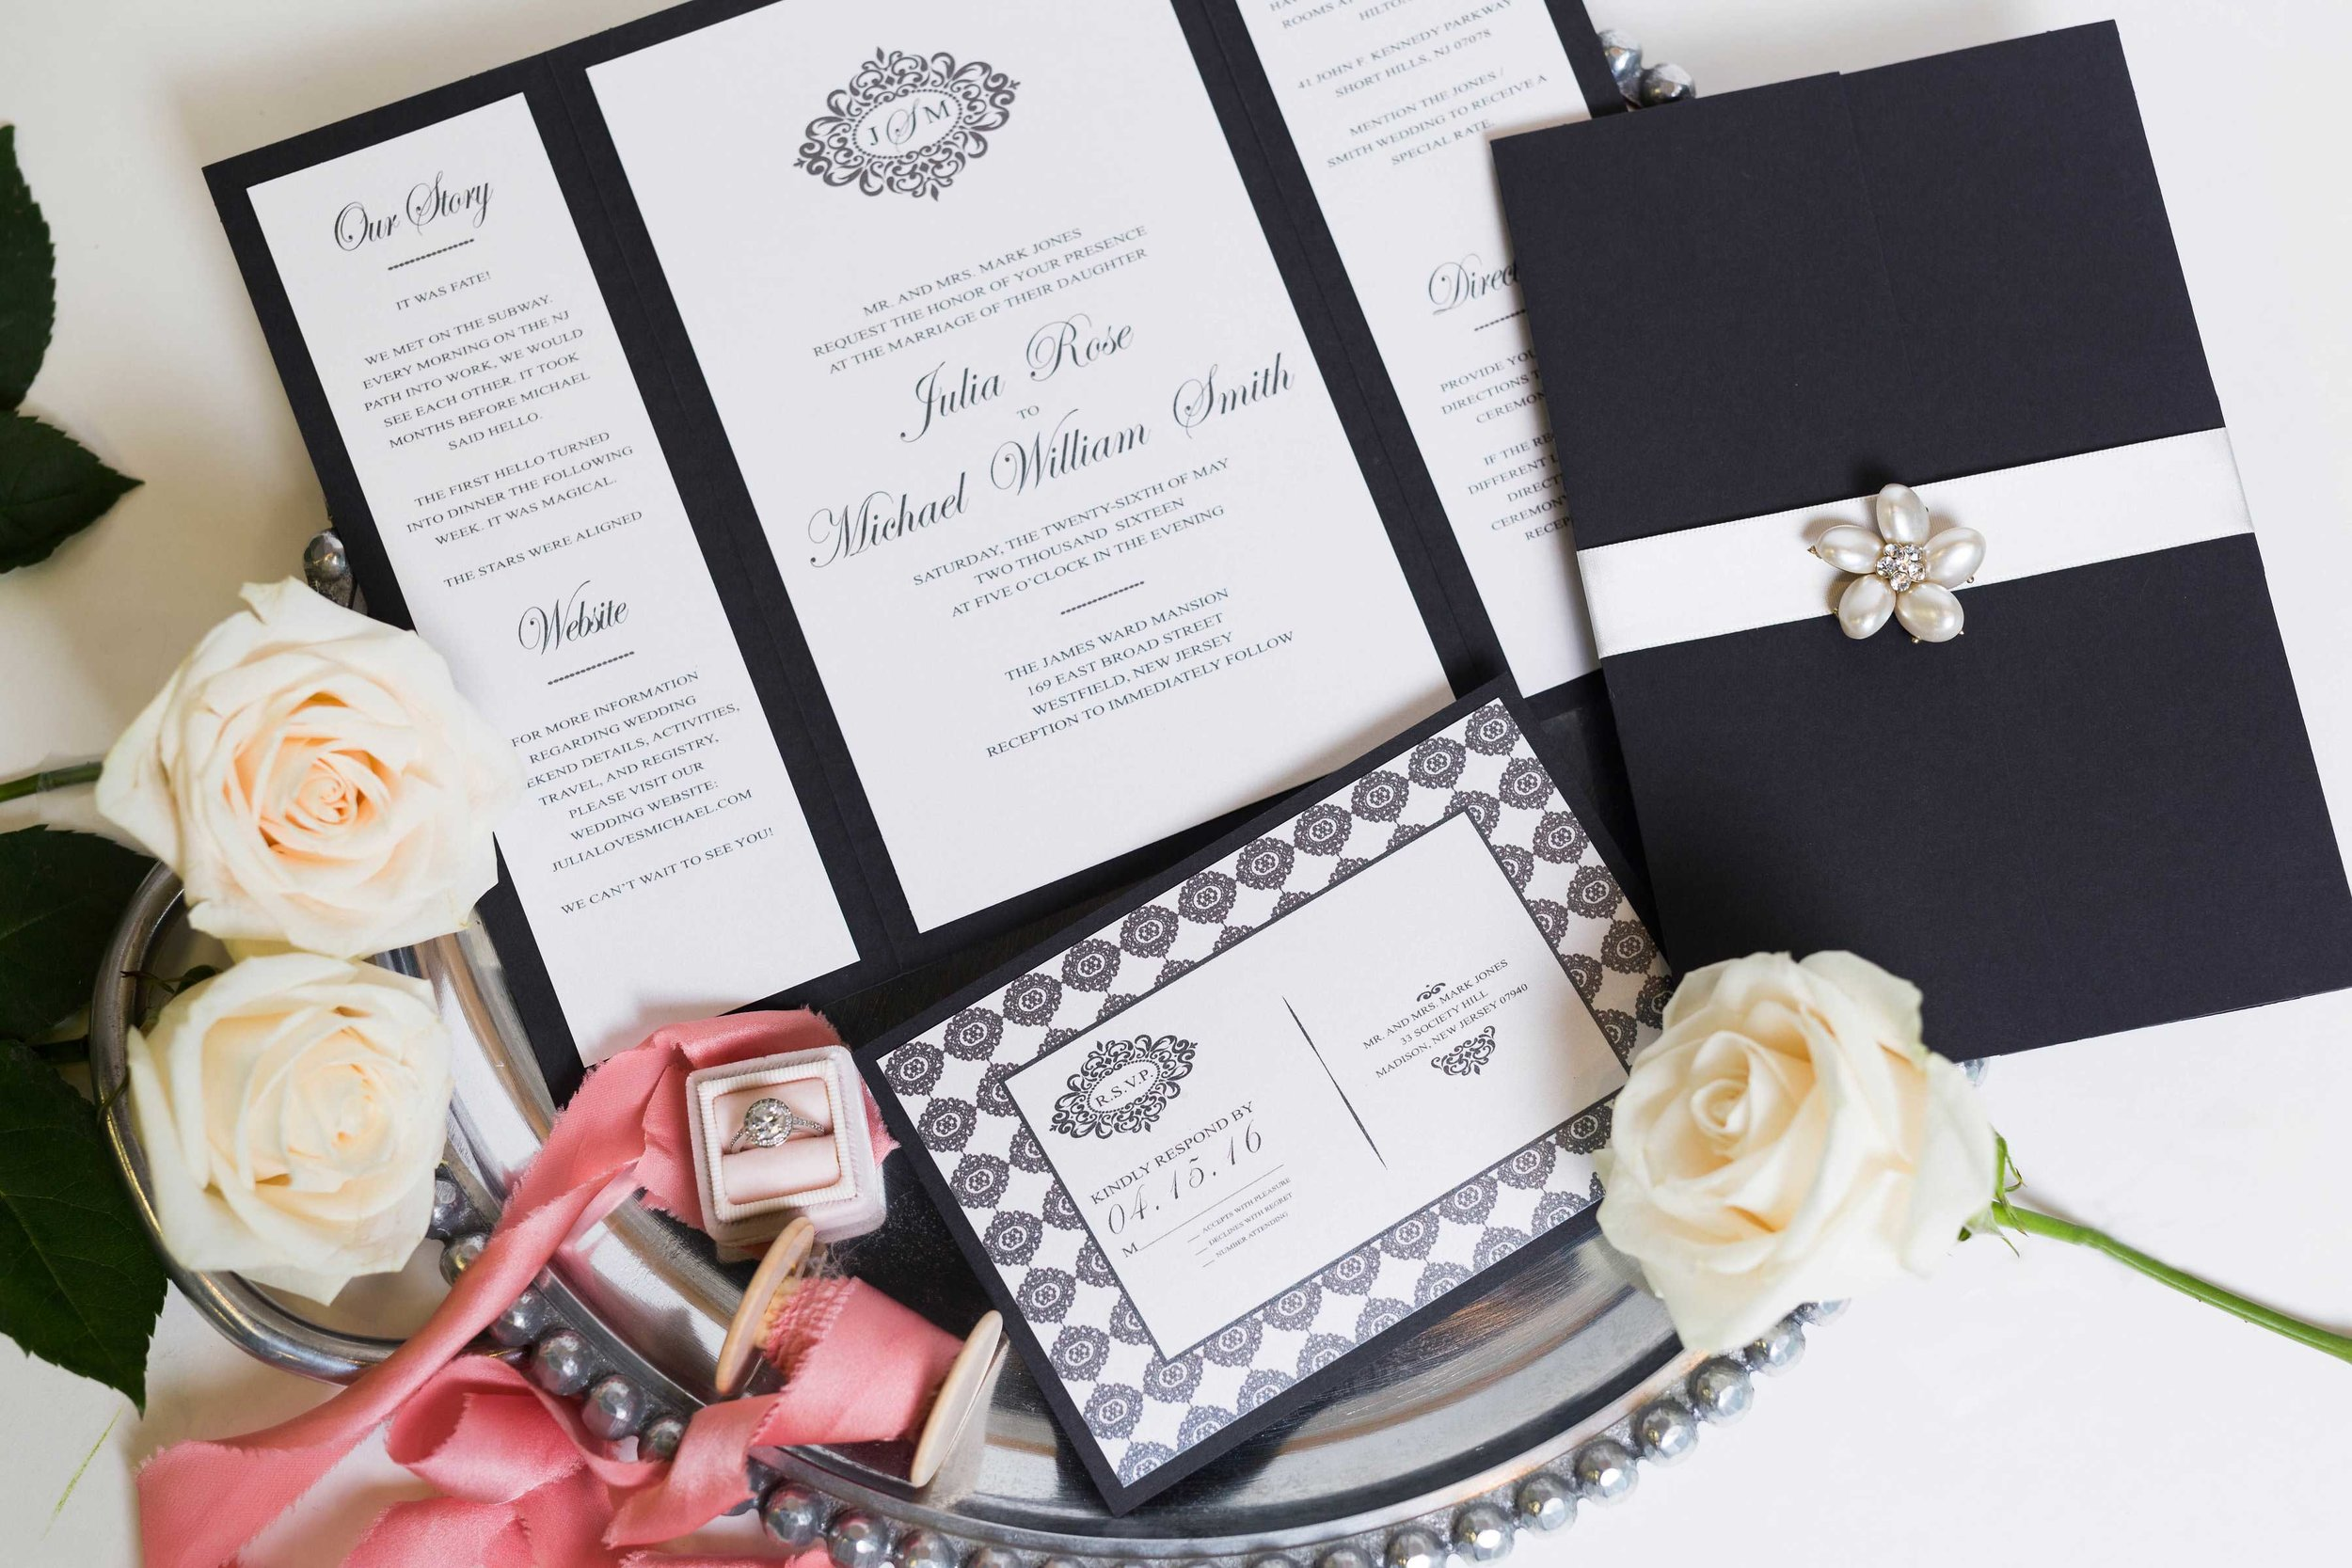 charlotte-and-lily-custom-invitation_black-and-white-vintage.jpg